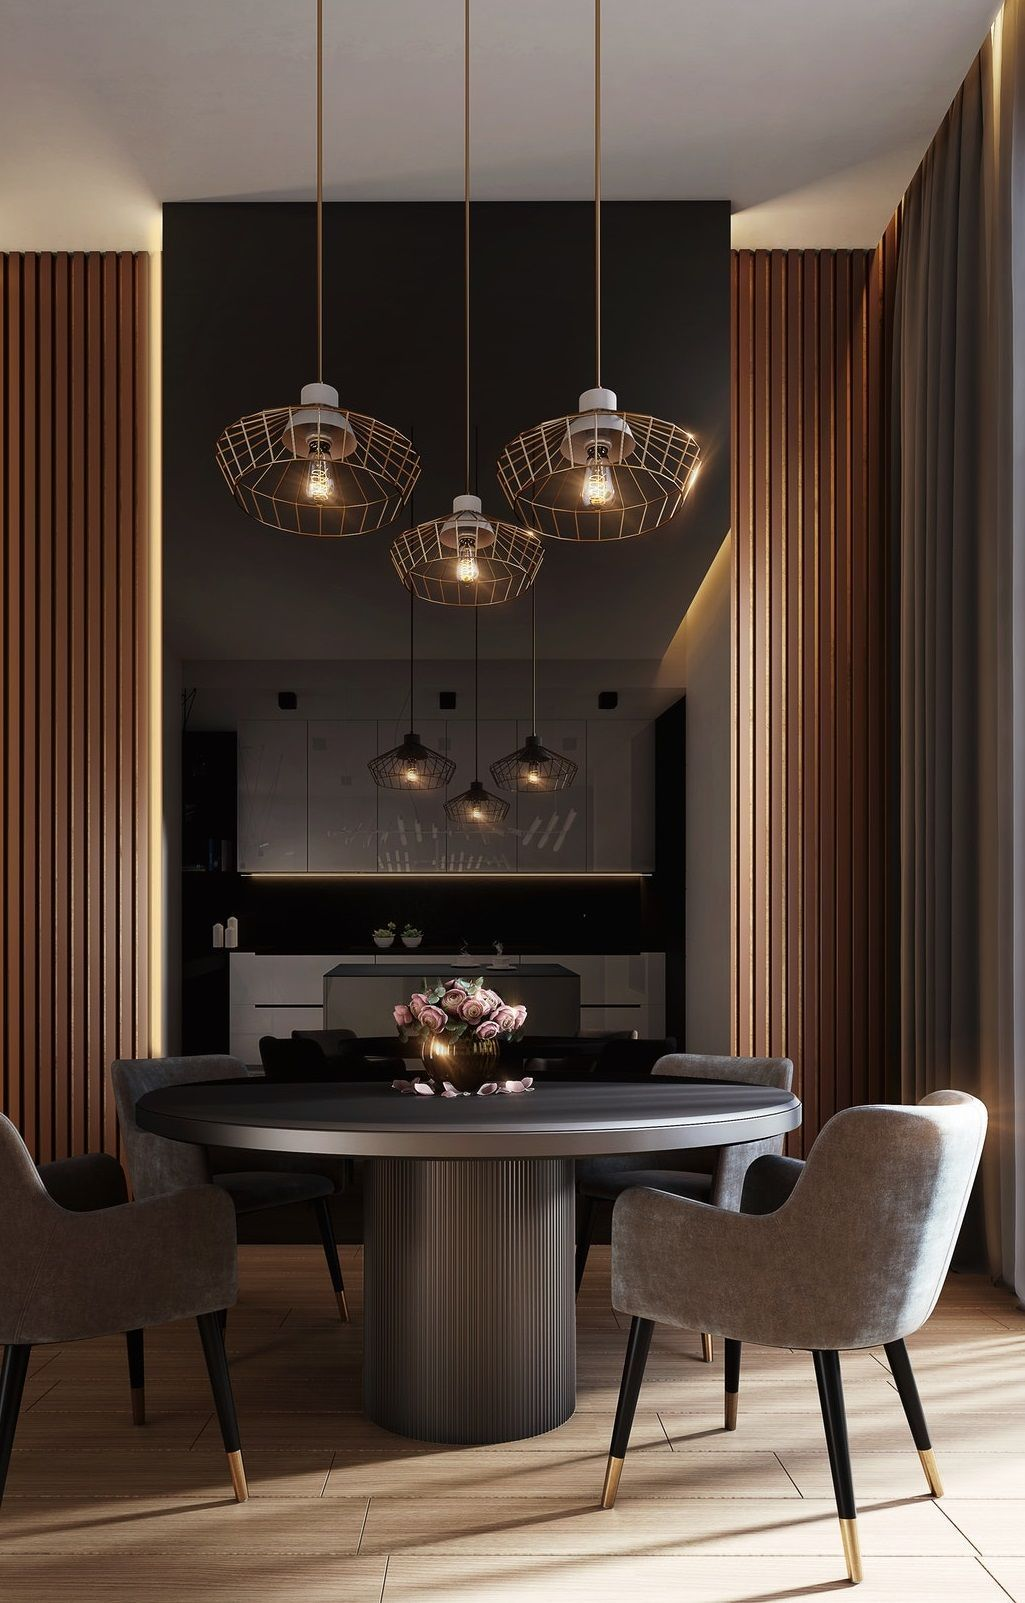 5 Dining Room Designs To Inspire You To Remodel Your Home Grey Dining Tables Home Decor Home Interior Design